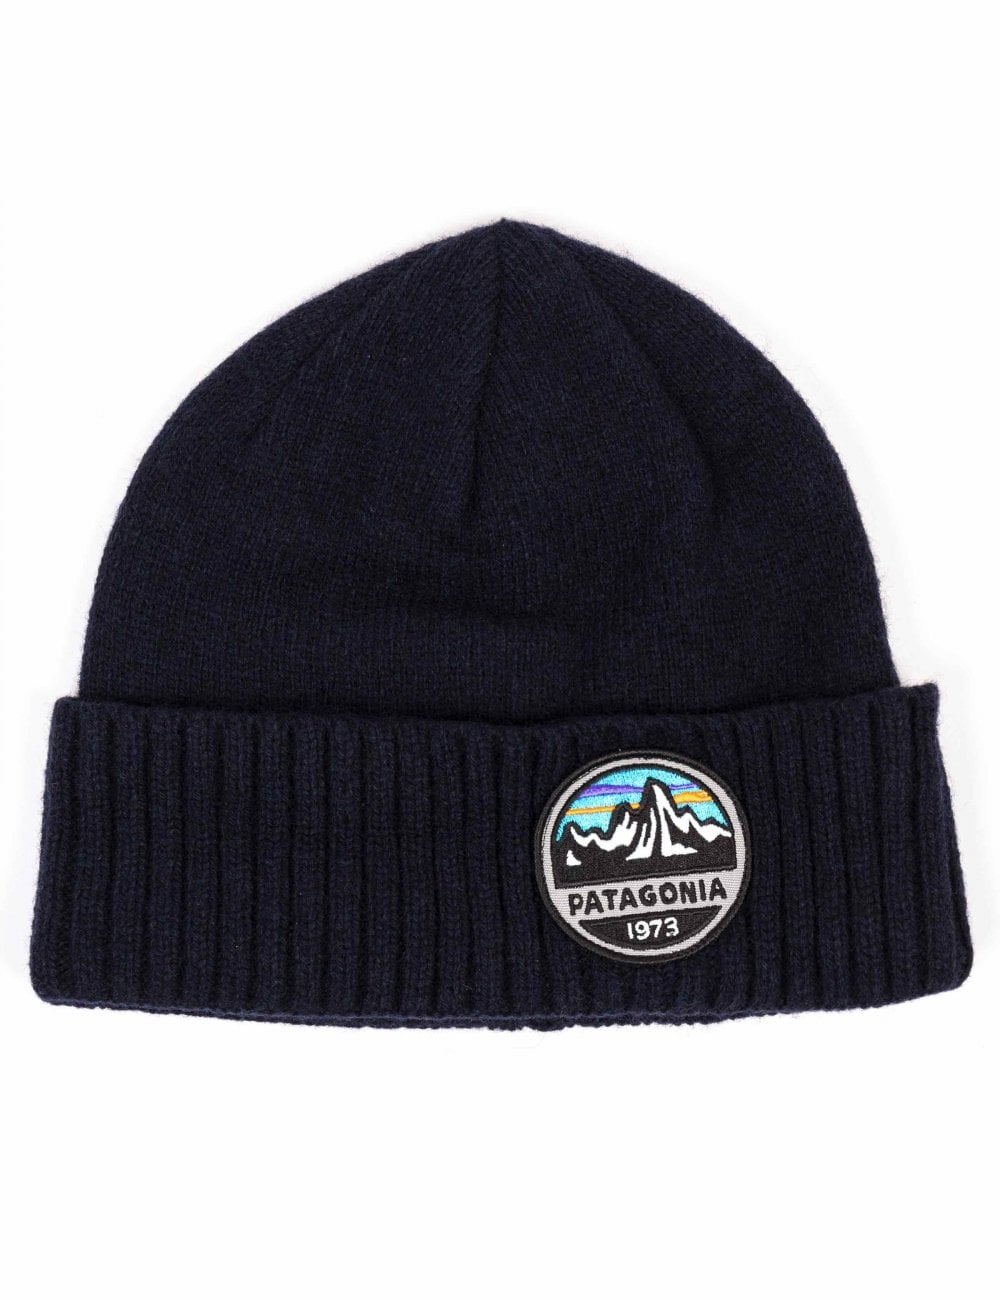 Patagonia Brodeo Beanie Hat - Fitz Roy Scope  Navy Blue ... d37492b1002